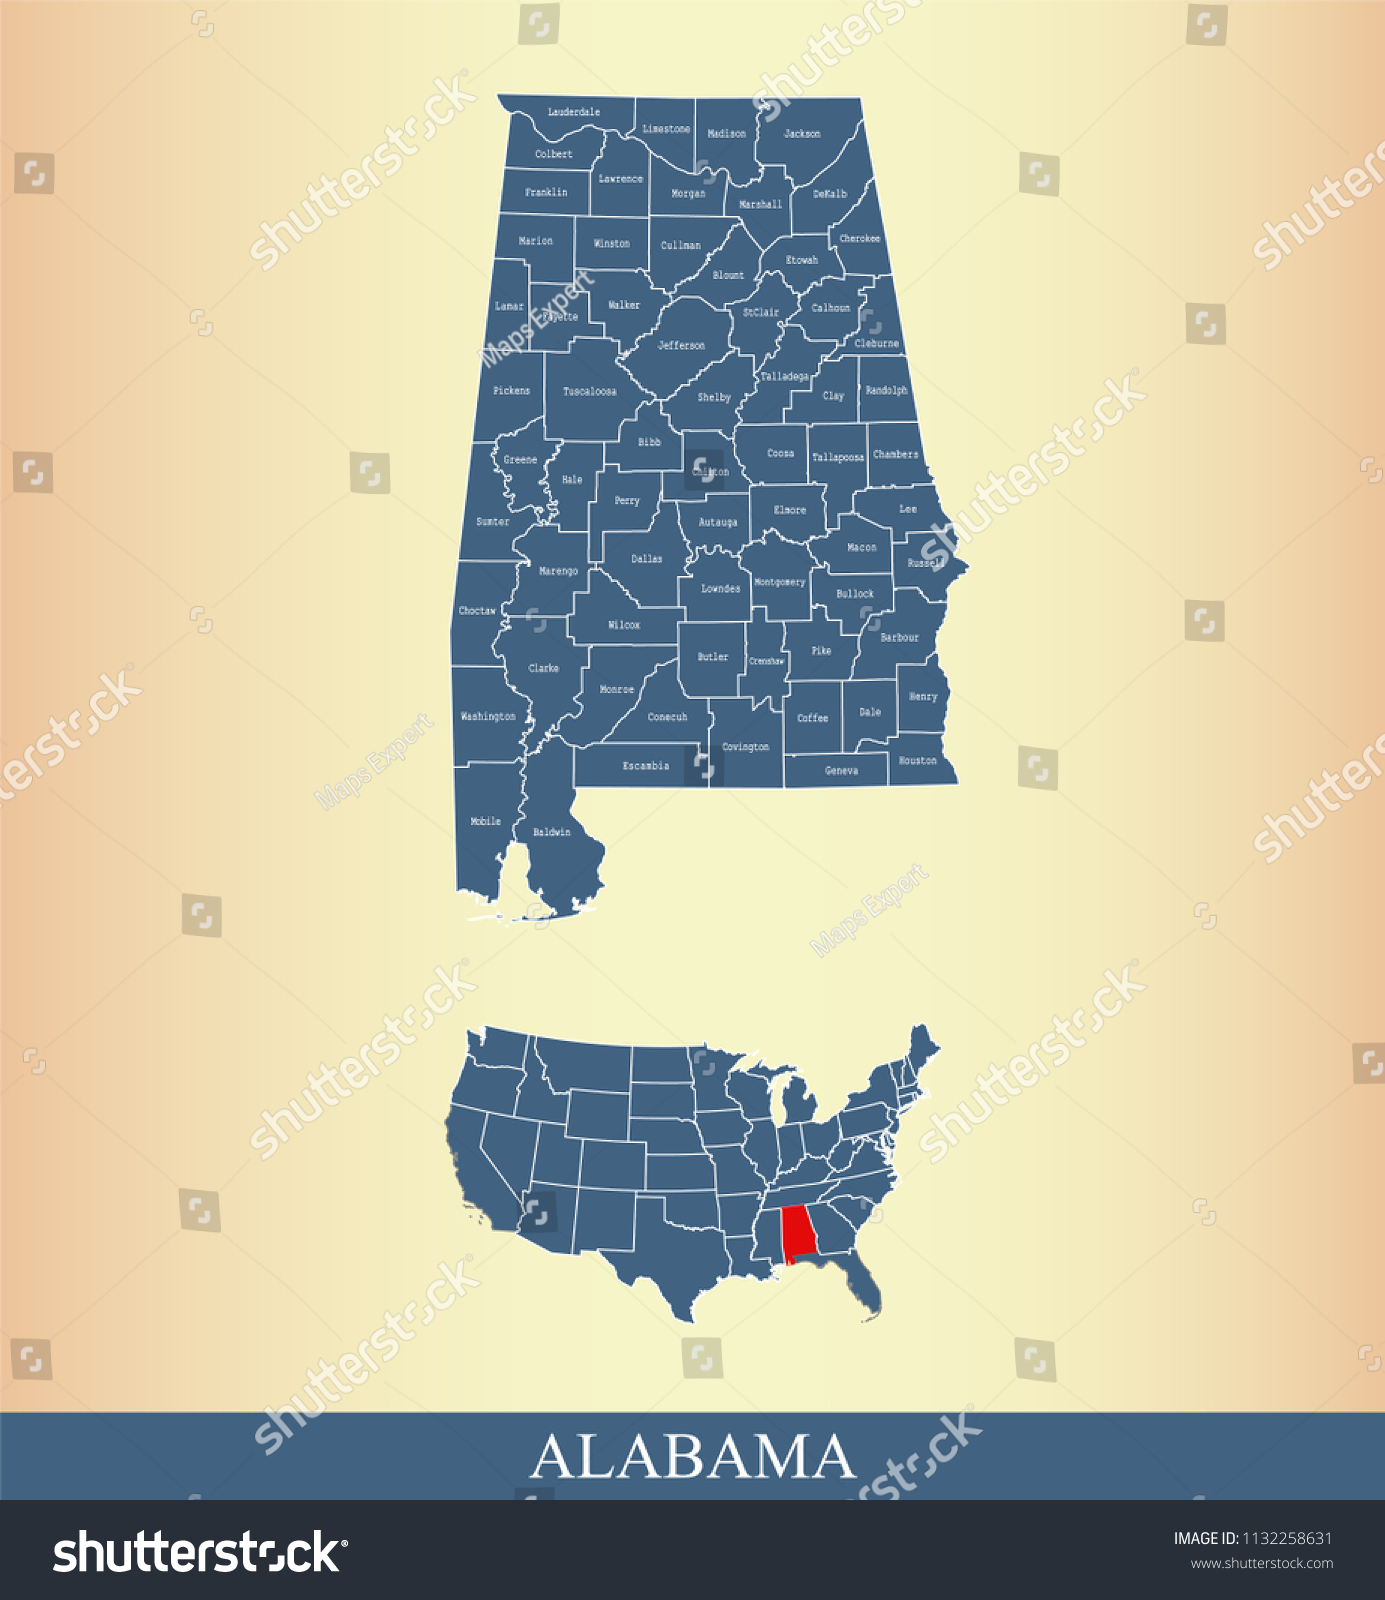 Alabama County Map Vector Outline Counties Stock Vector 1132258631     Alabama county map vector outline with counties names labeled and USA map  in blue background